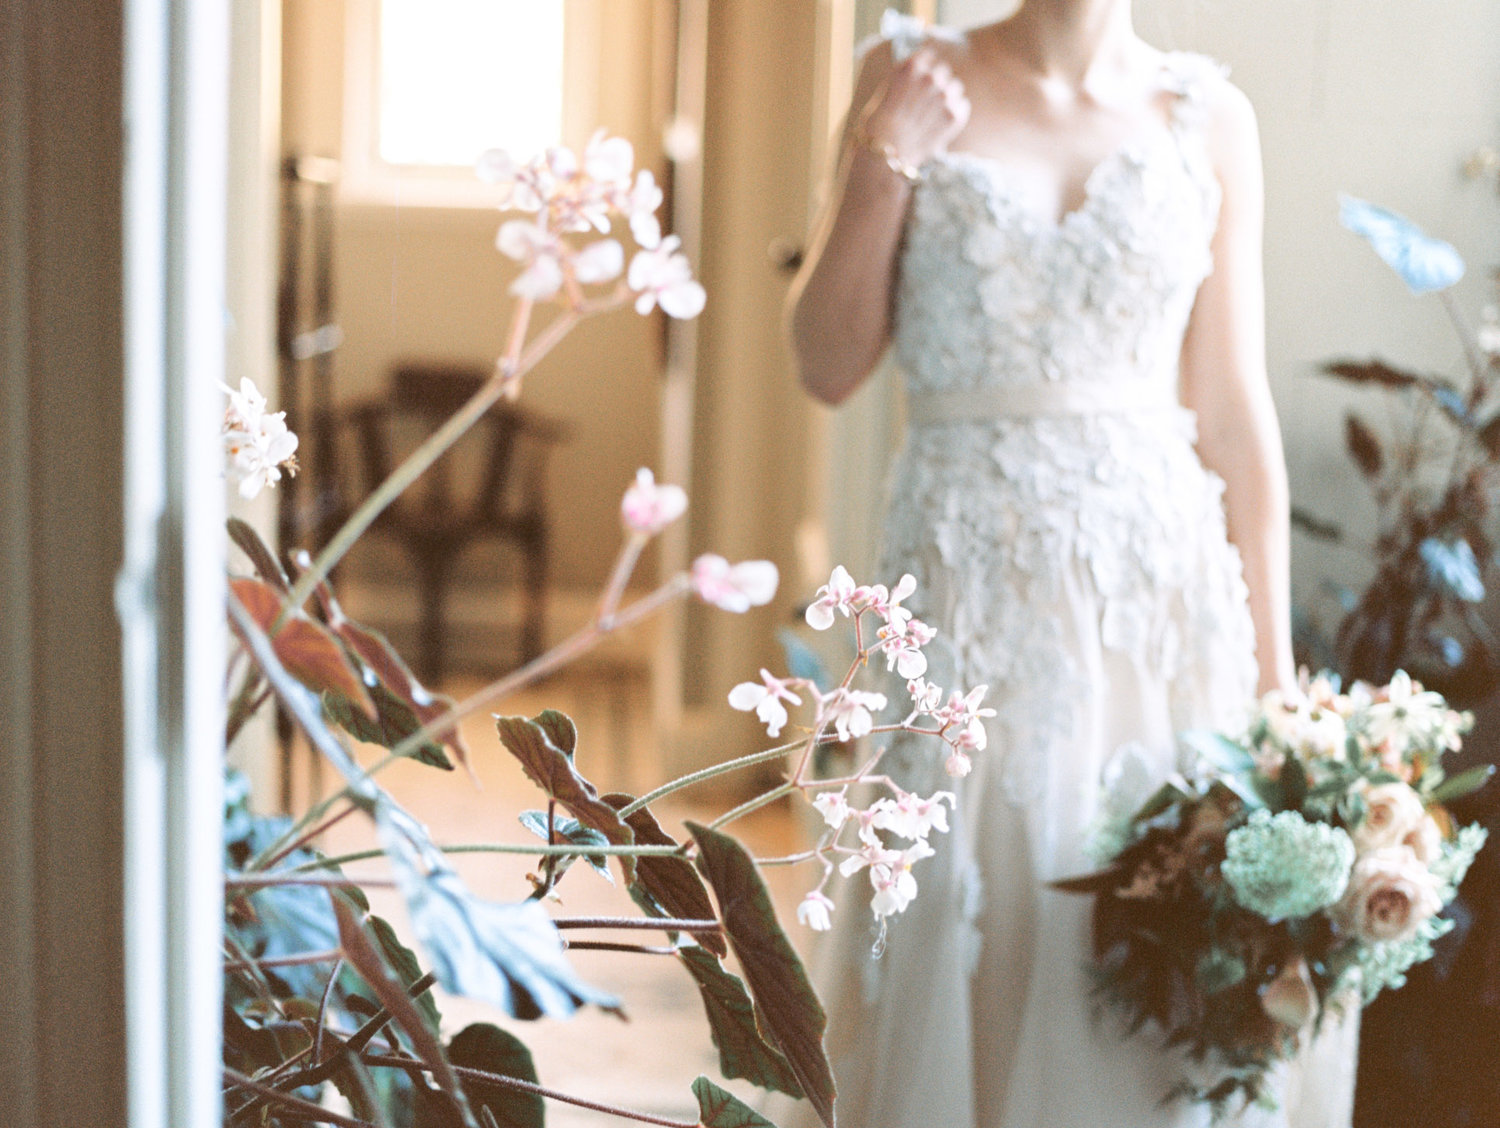 Hopewood House - Romantic Winter Wedding Shoot - Lilli Kad Photography - Shot - Residence Interior 3.jpeg